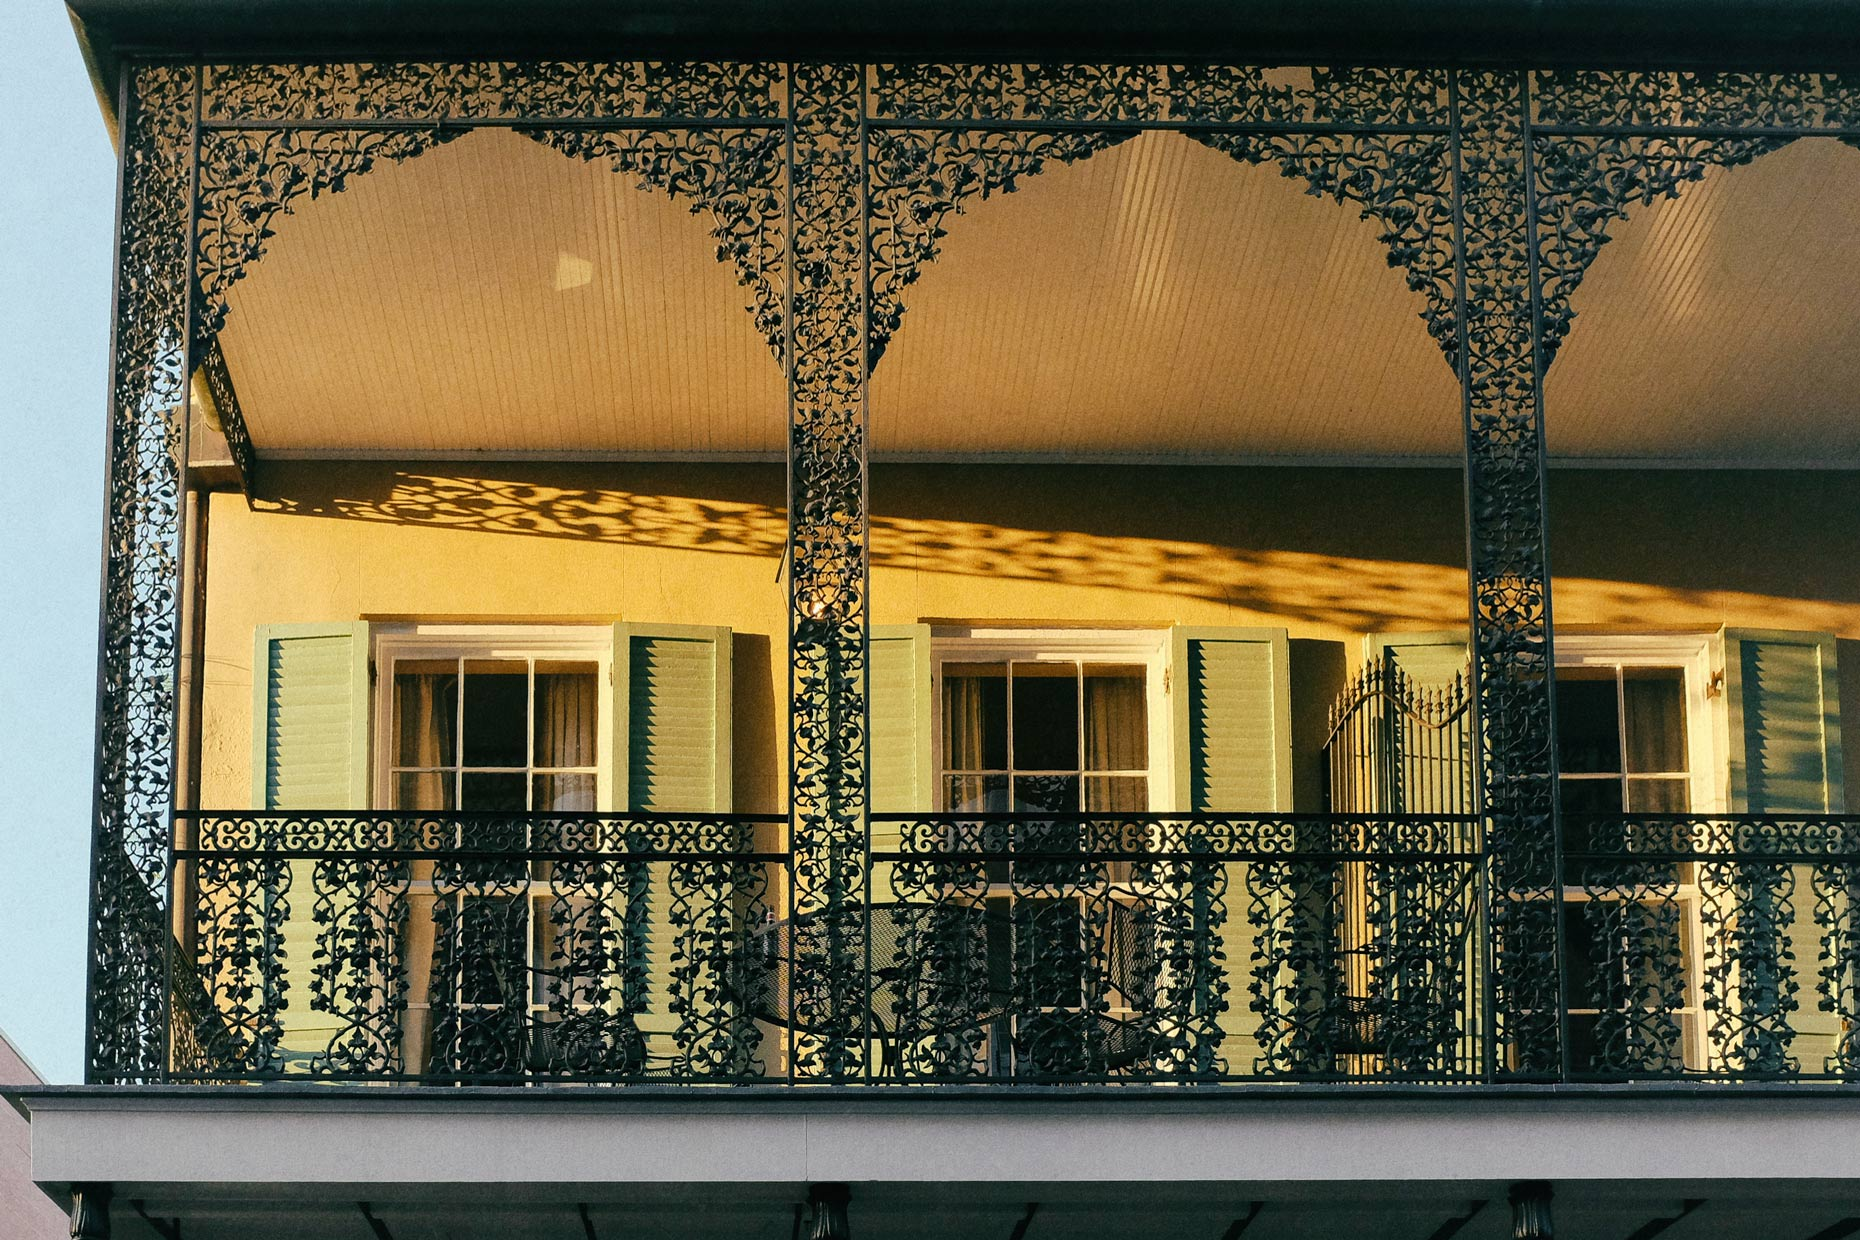 Architecture in New Orleans by photographer Kevin Brown